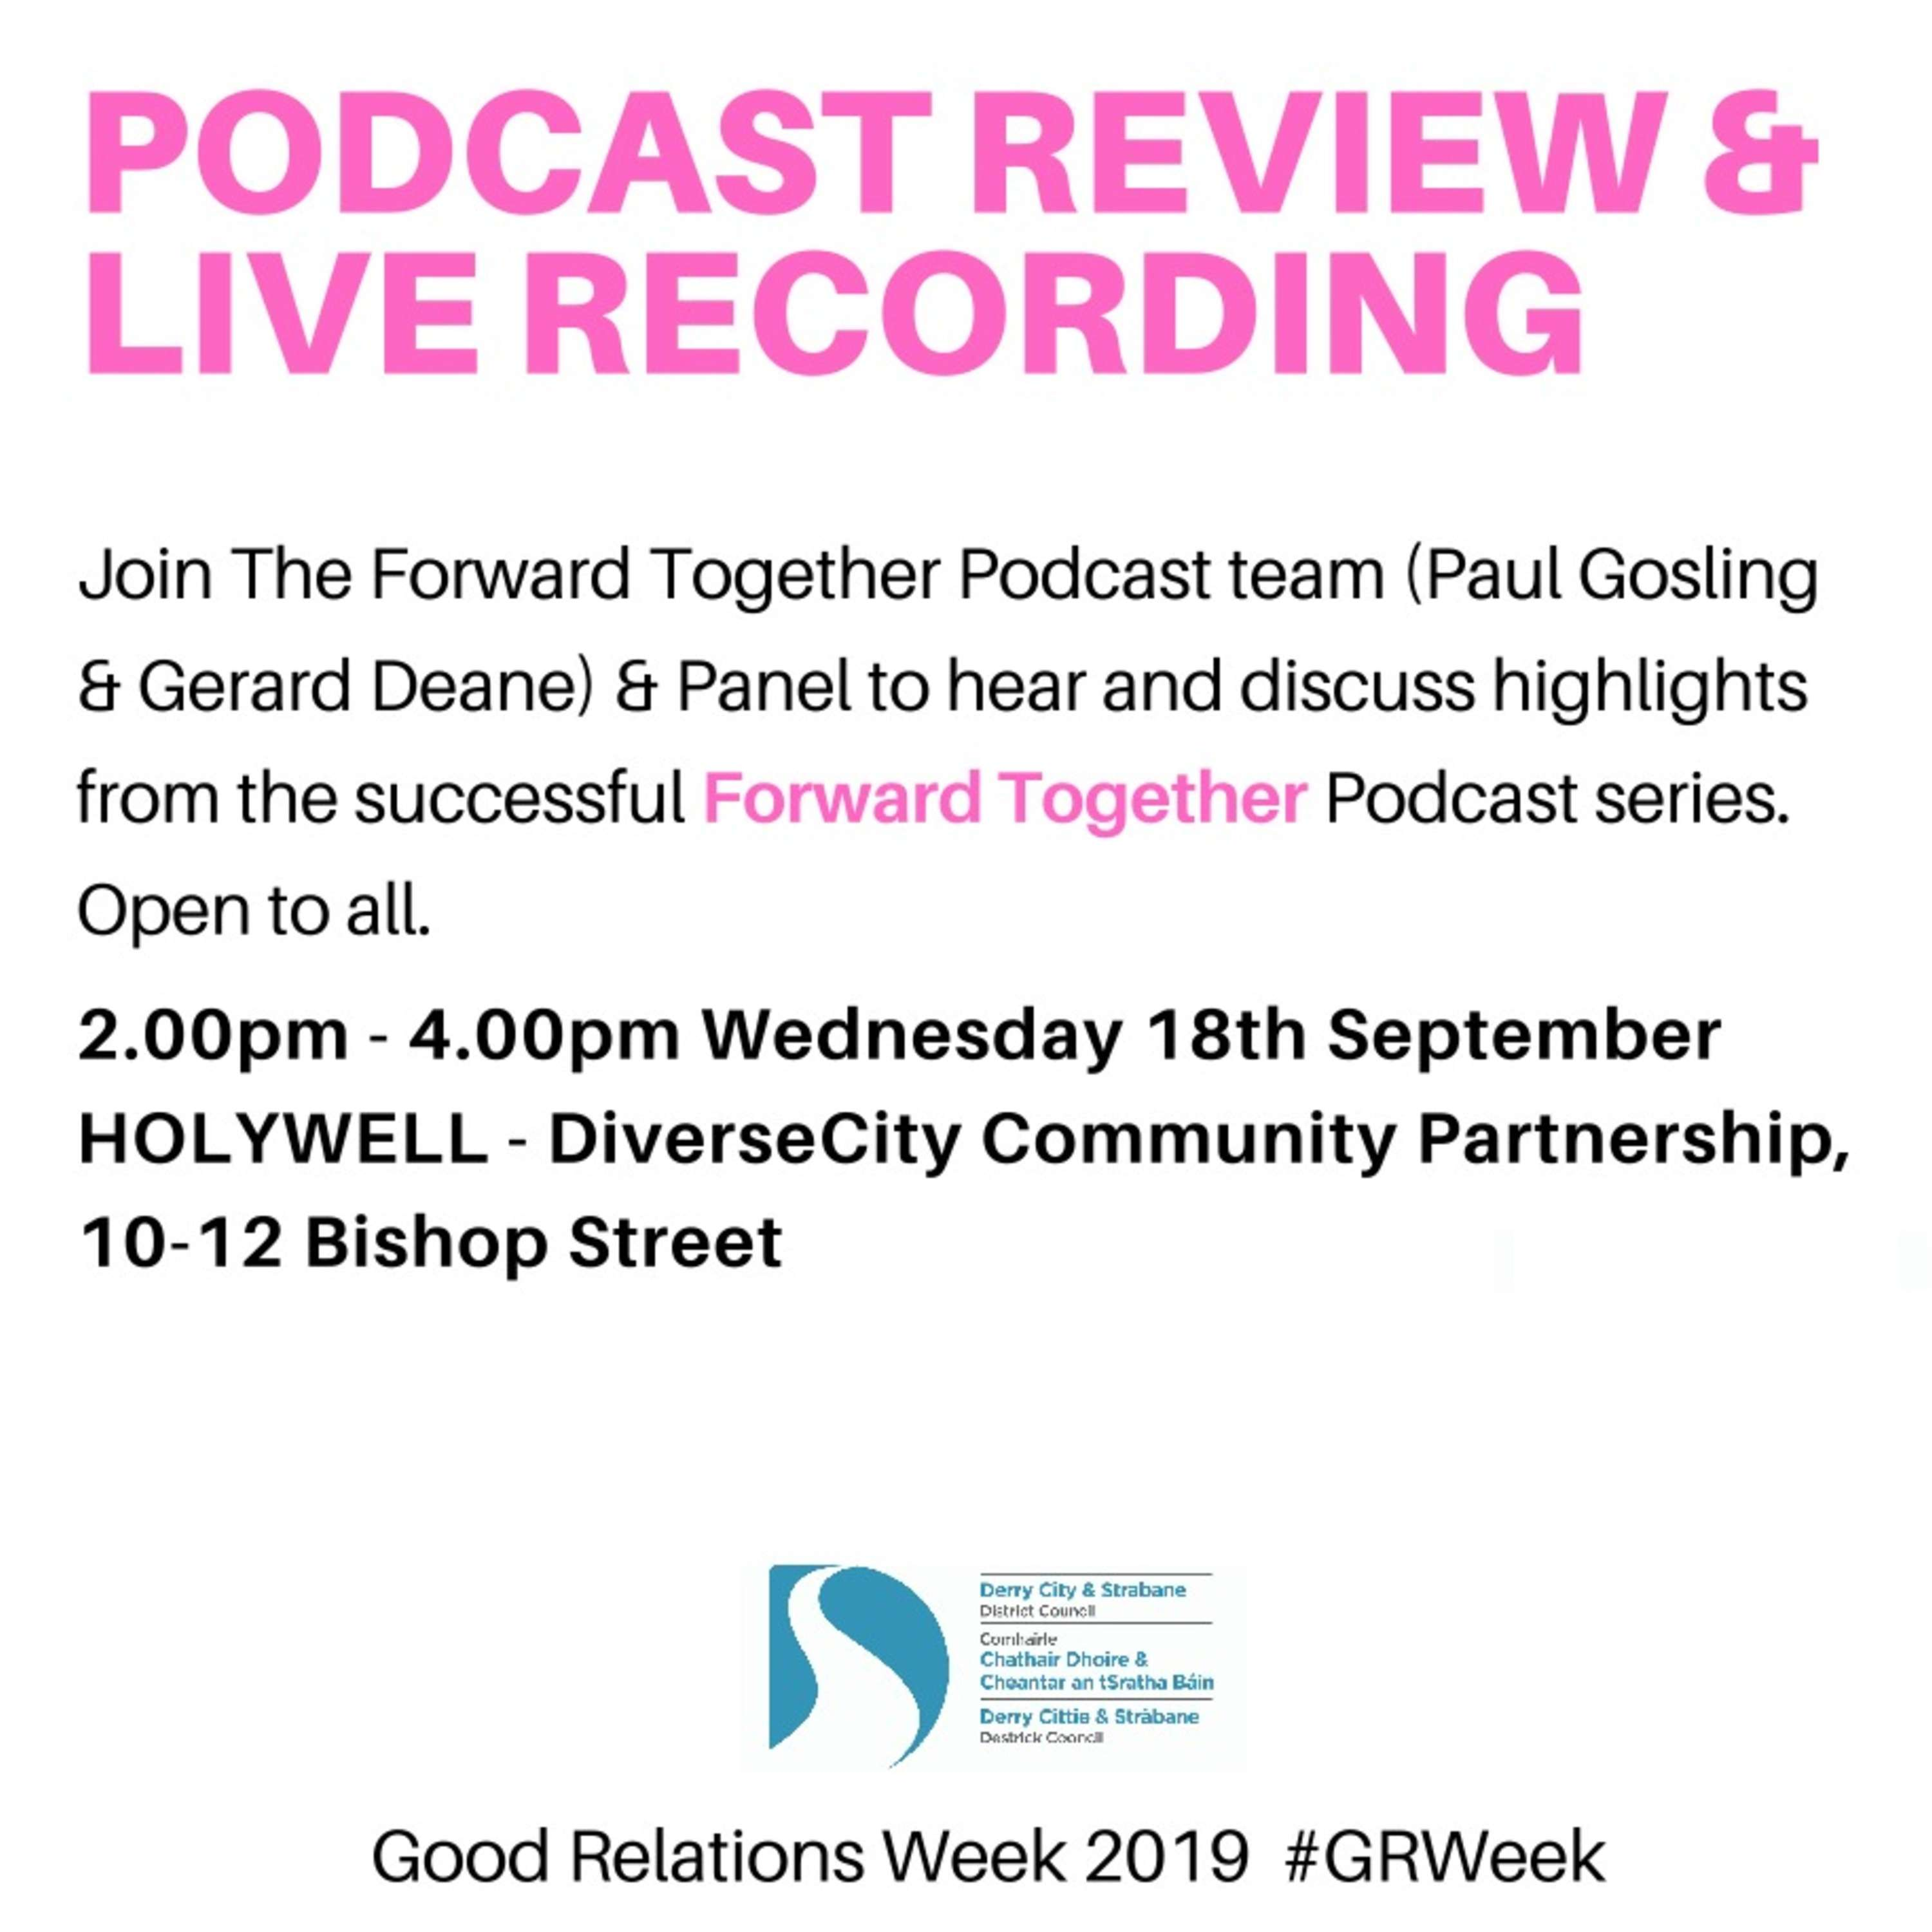 Good Relations Week - Review & Panel Discussion